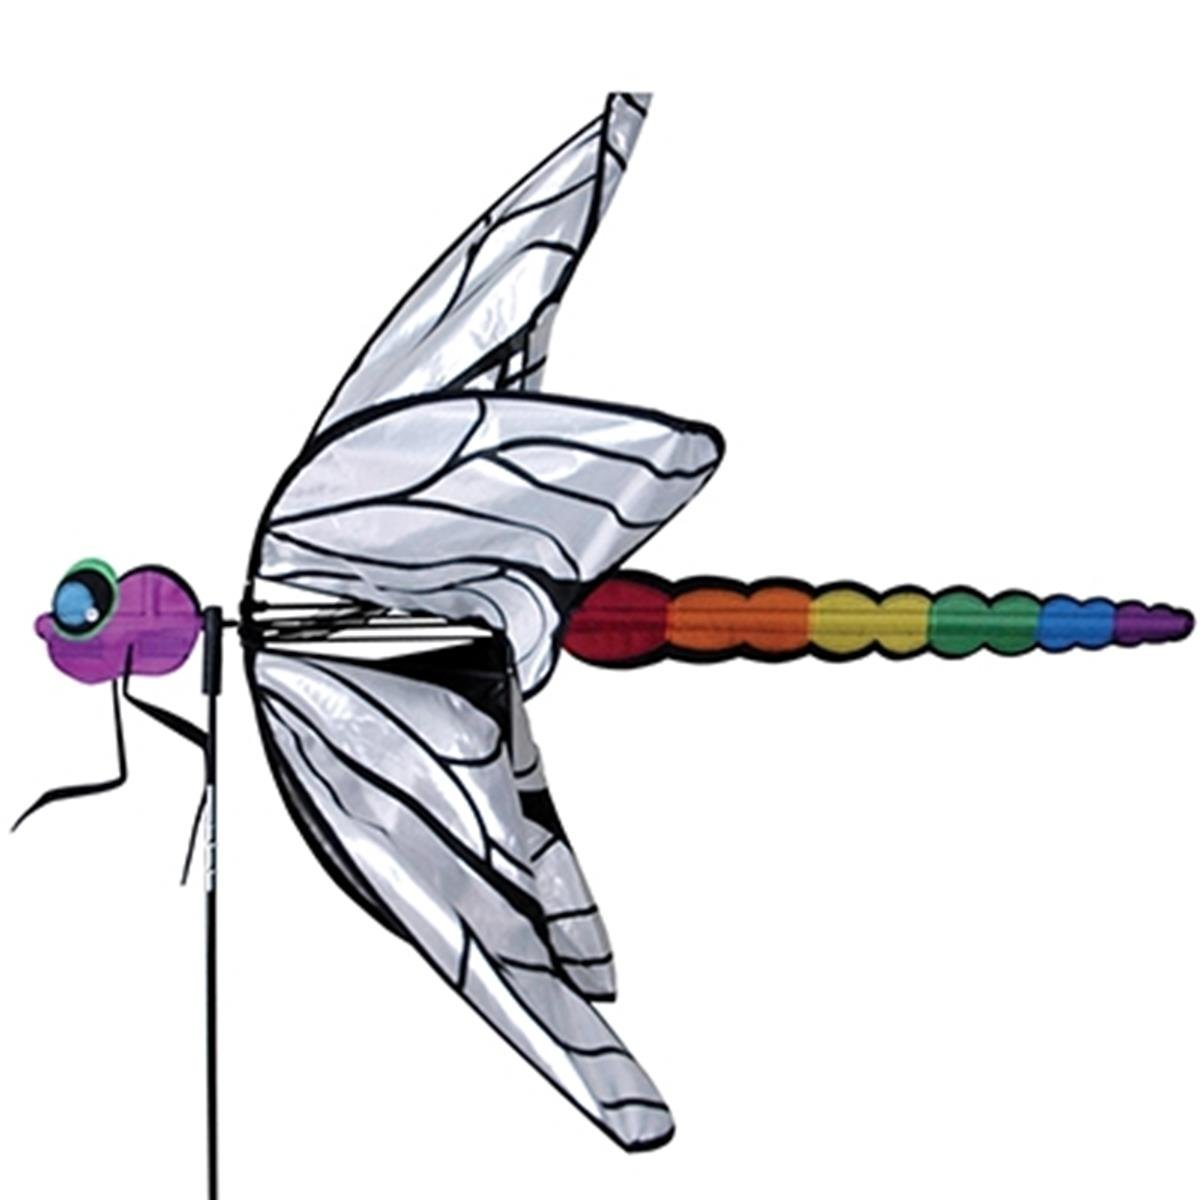 Premier Designs PD25975 Dragonfly Garden Spinner B000SY7H9A